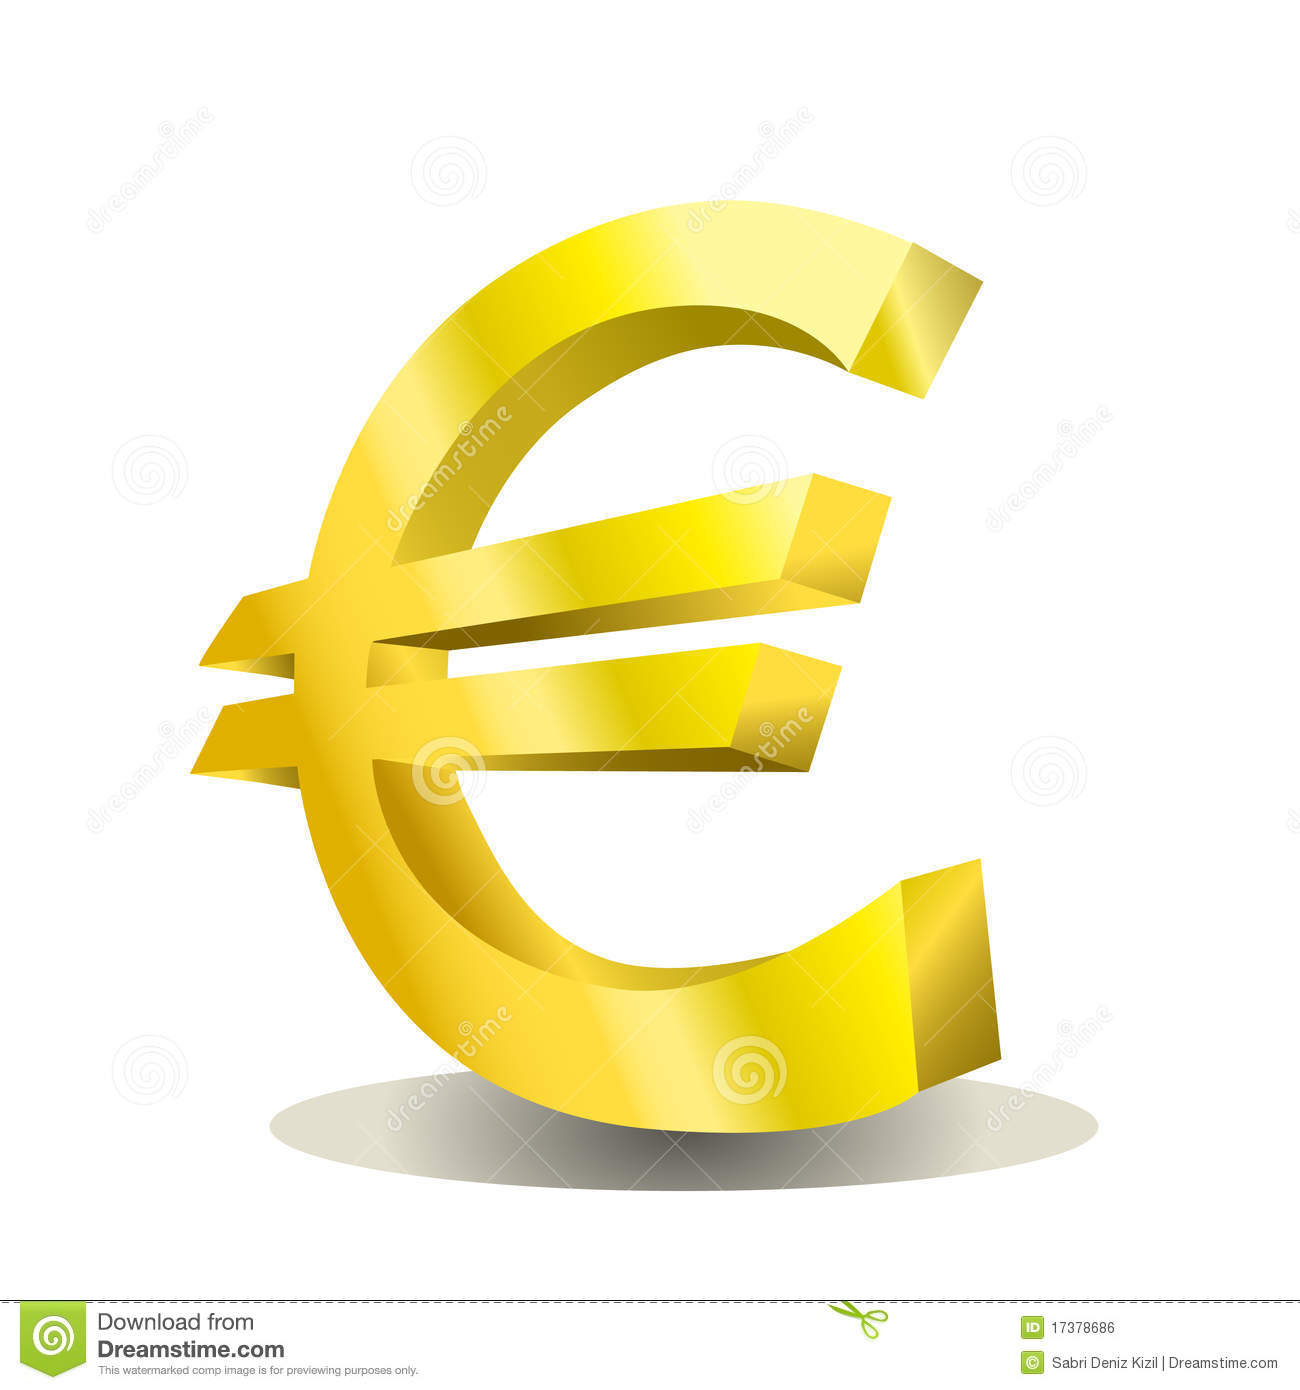 Euro design vector royalty free stock image image 17378686 for Disegno 3d free